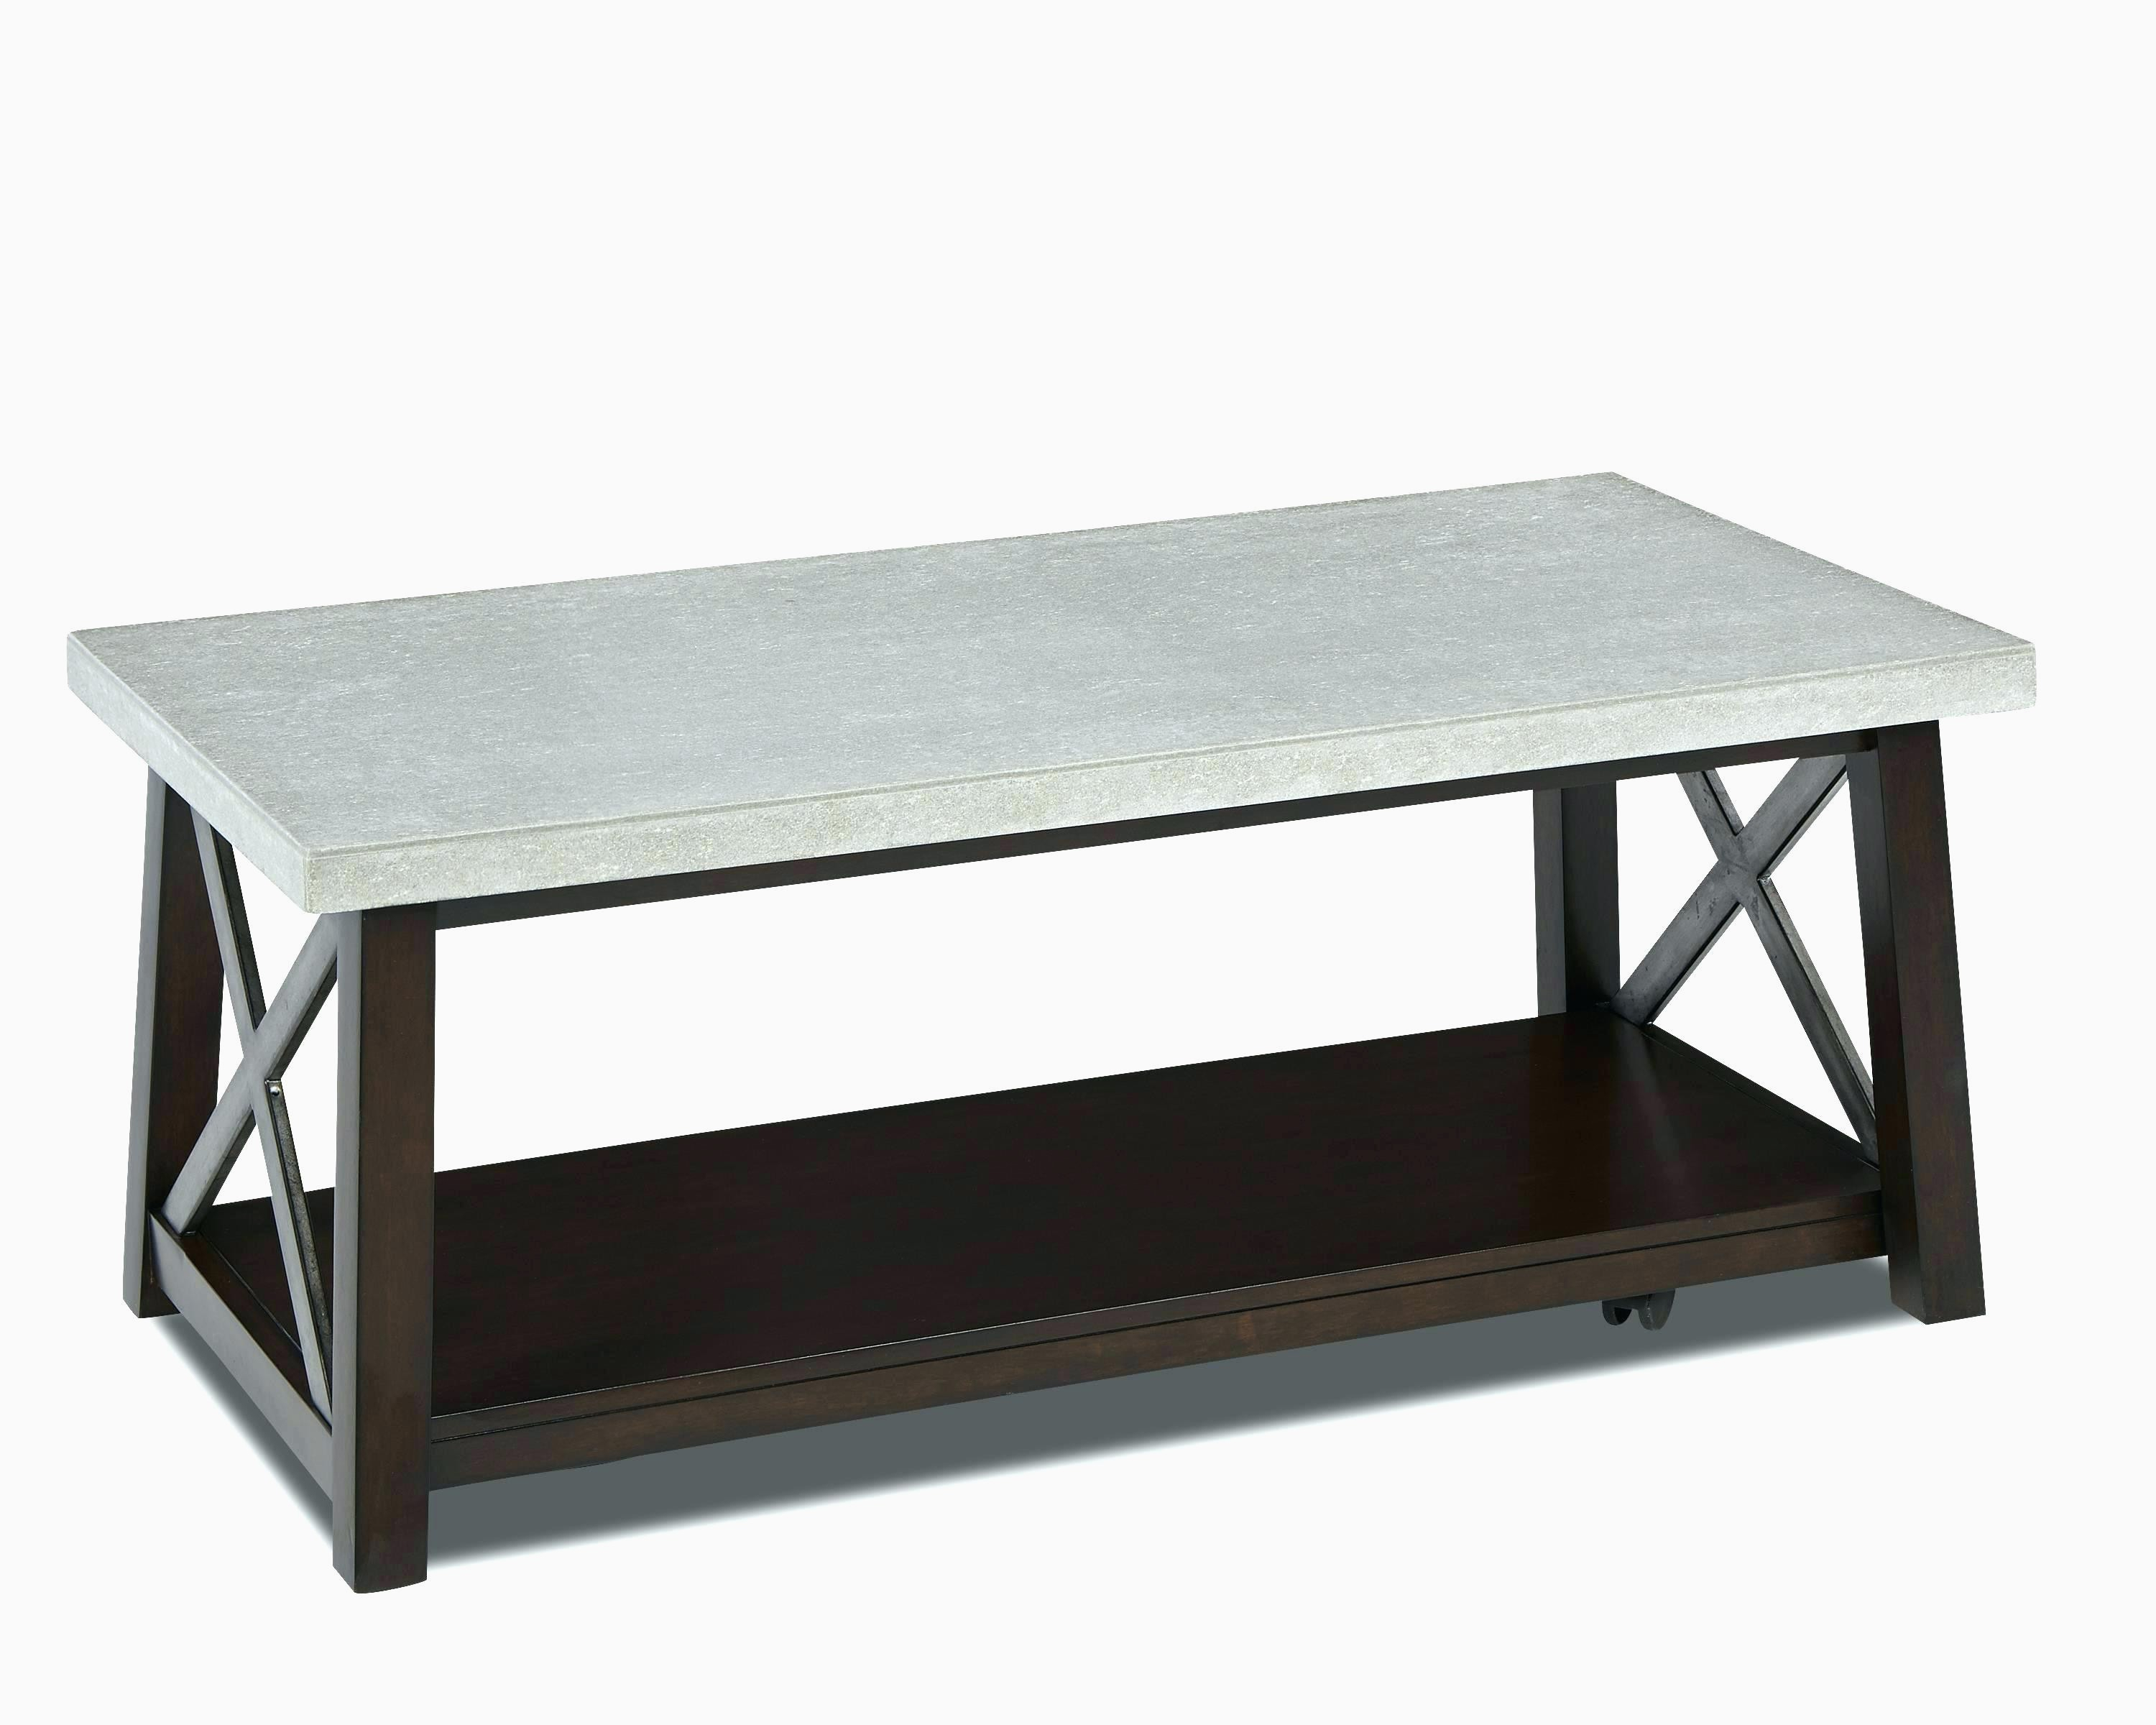 15 Glass Coffee Table And Tv Stand Ideas | Coffee Tables Ideas Throughout Rowan 45 Inch Tv Stands (View 21 of 30)